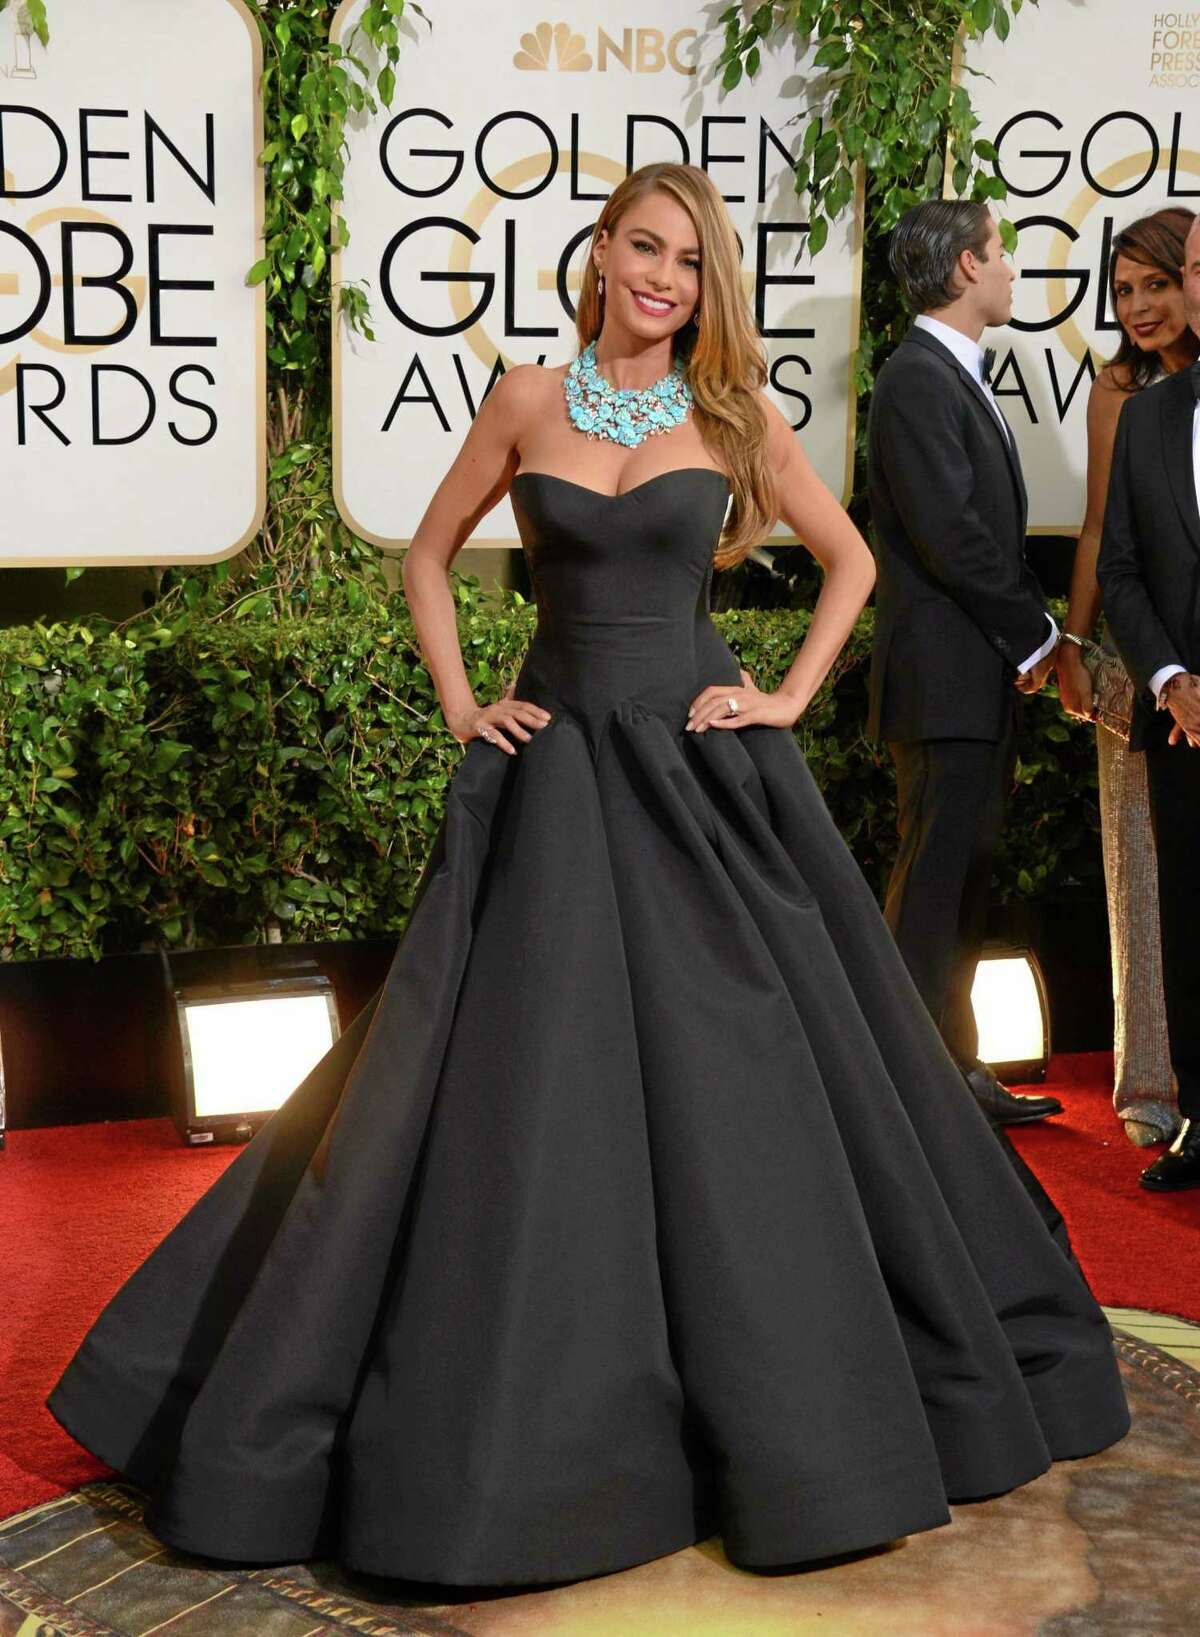 Sofia Vergara arrives at the 71st annual Golden Globe Awards at the Beverly Hilton Hotel on Sunday, Jan. 12, 2014, in Beverly Hills, Calif. (Photo by Jordan Strauss/Invision/AP)